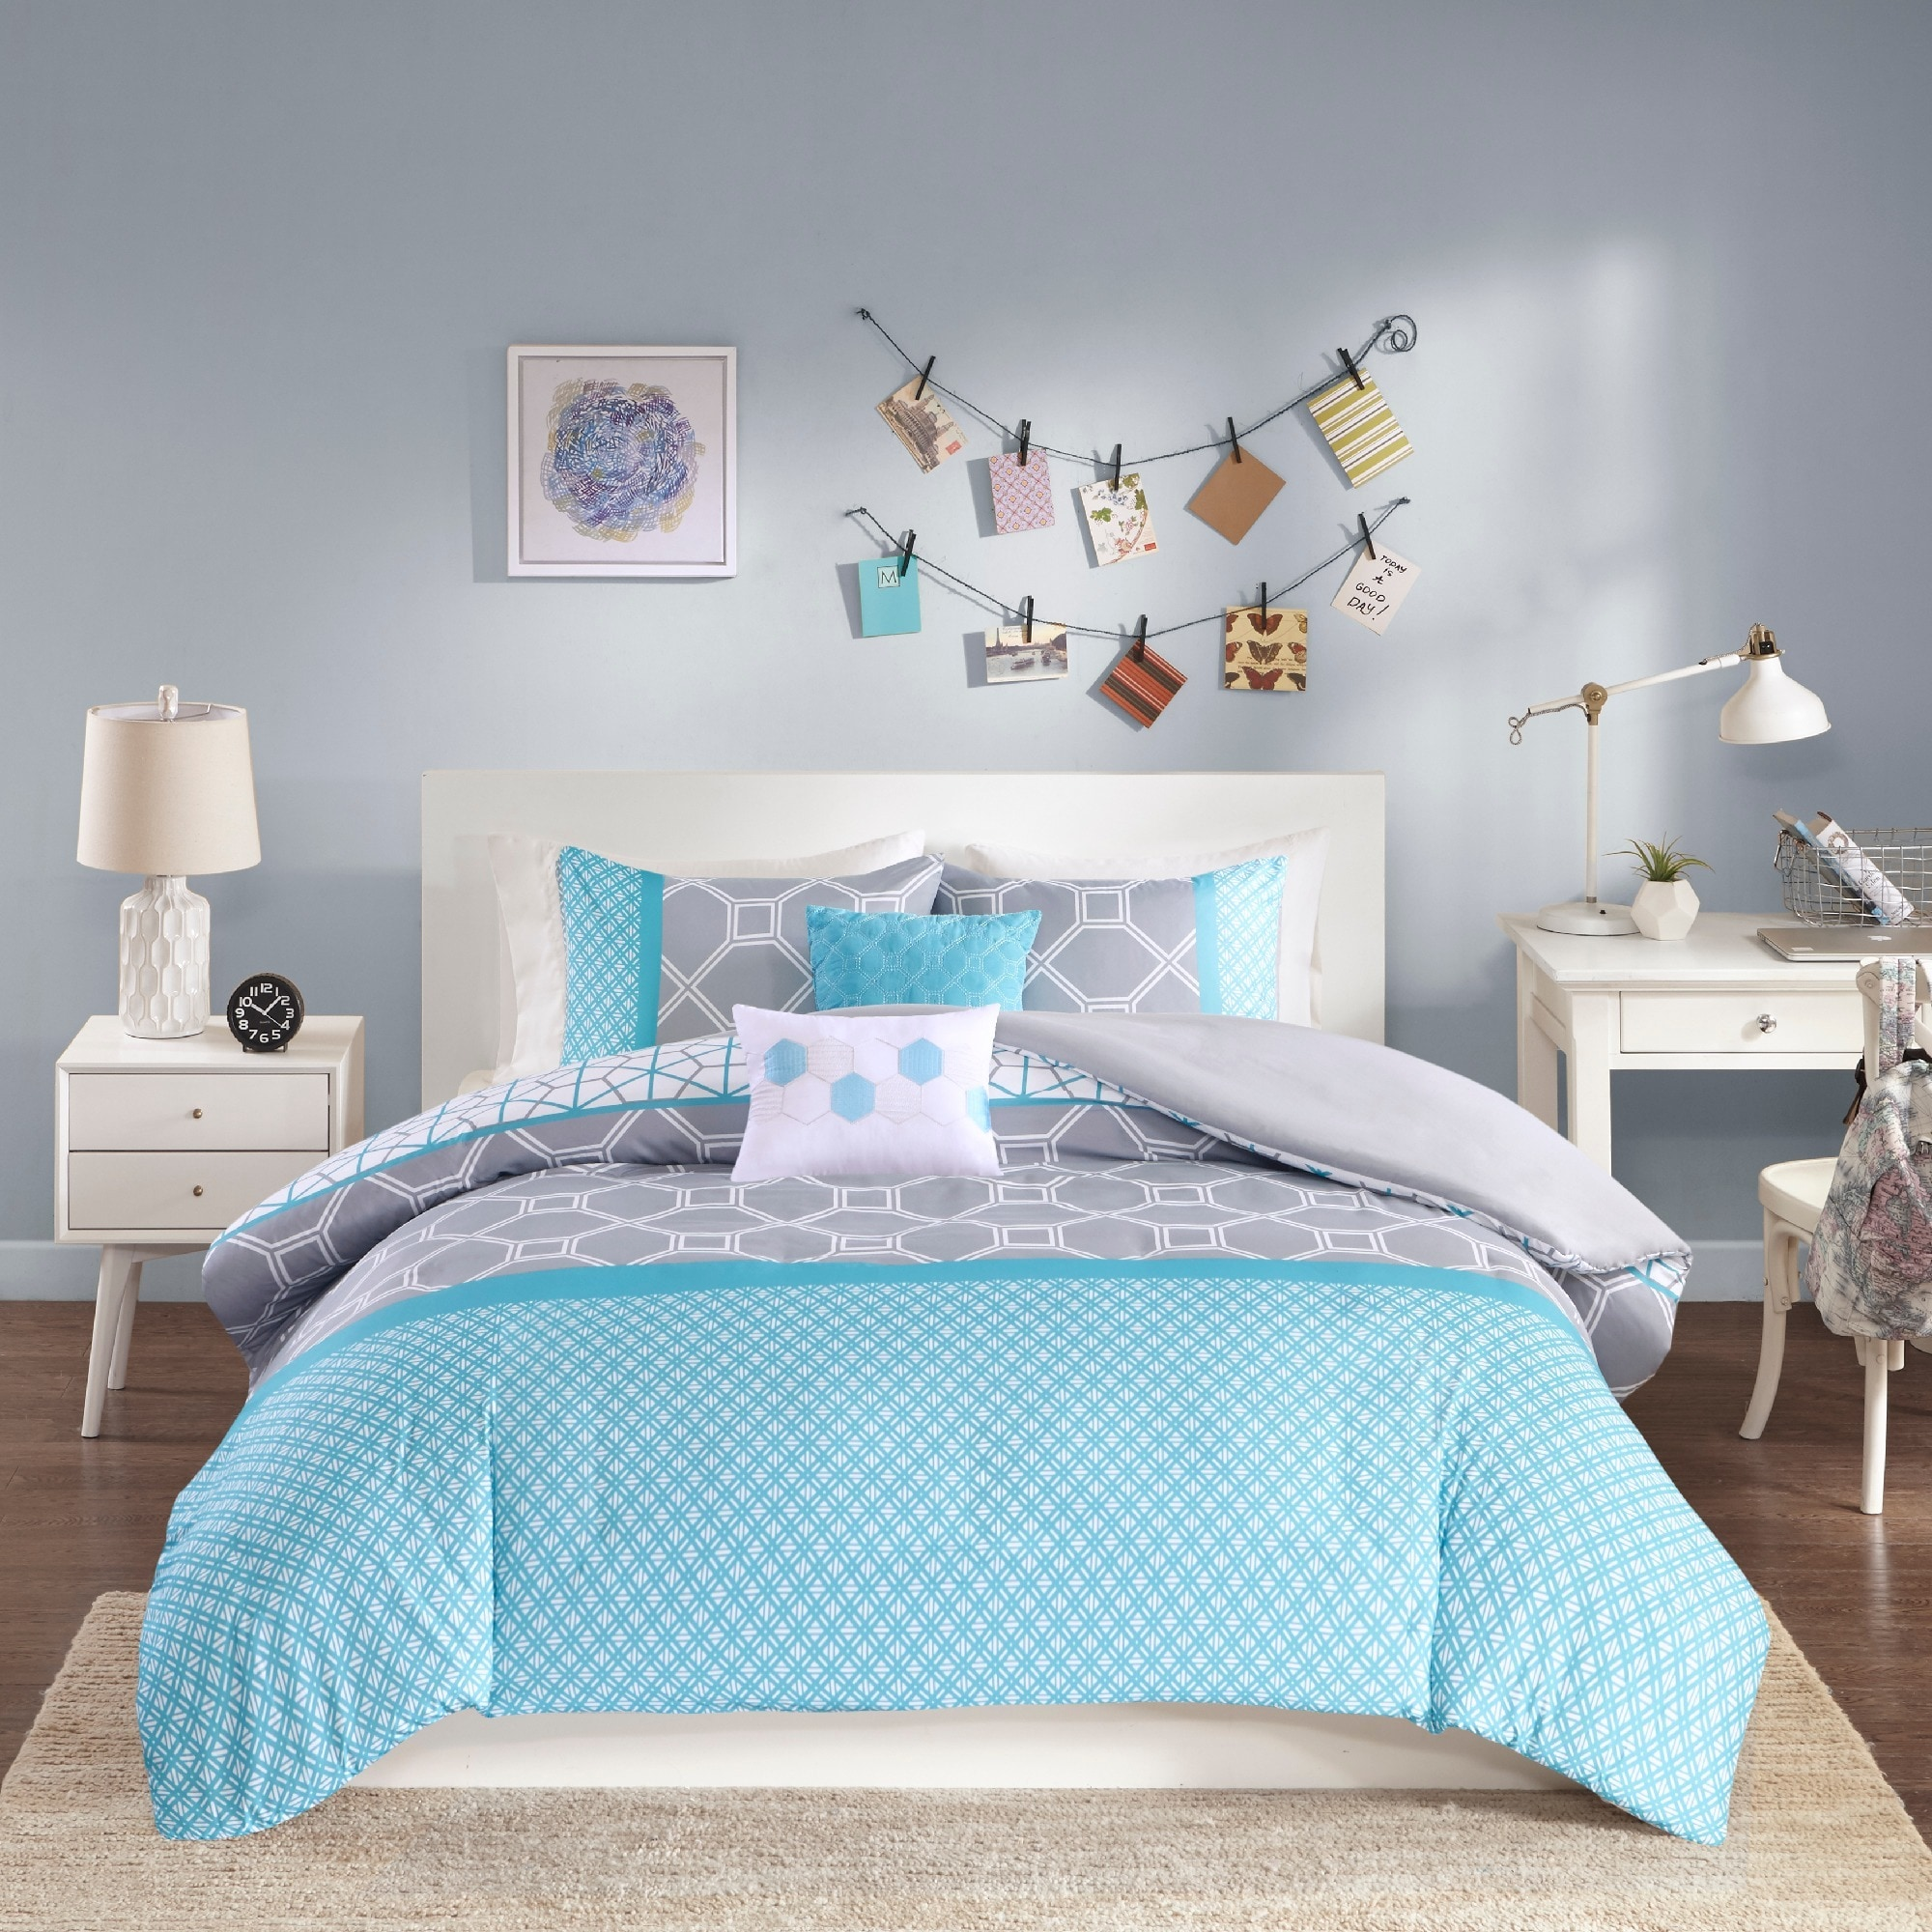 king twin duvet bed photo awesome comforter sets queen floral teal cal single covers less bedroom com bedding cover luxury most for splendiferous size overstock kohls set quilted with